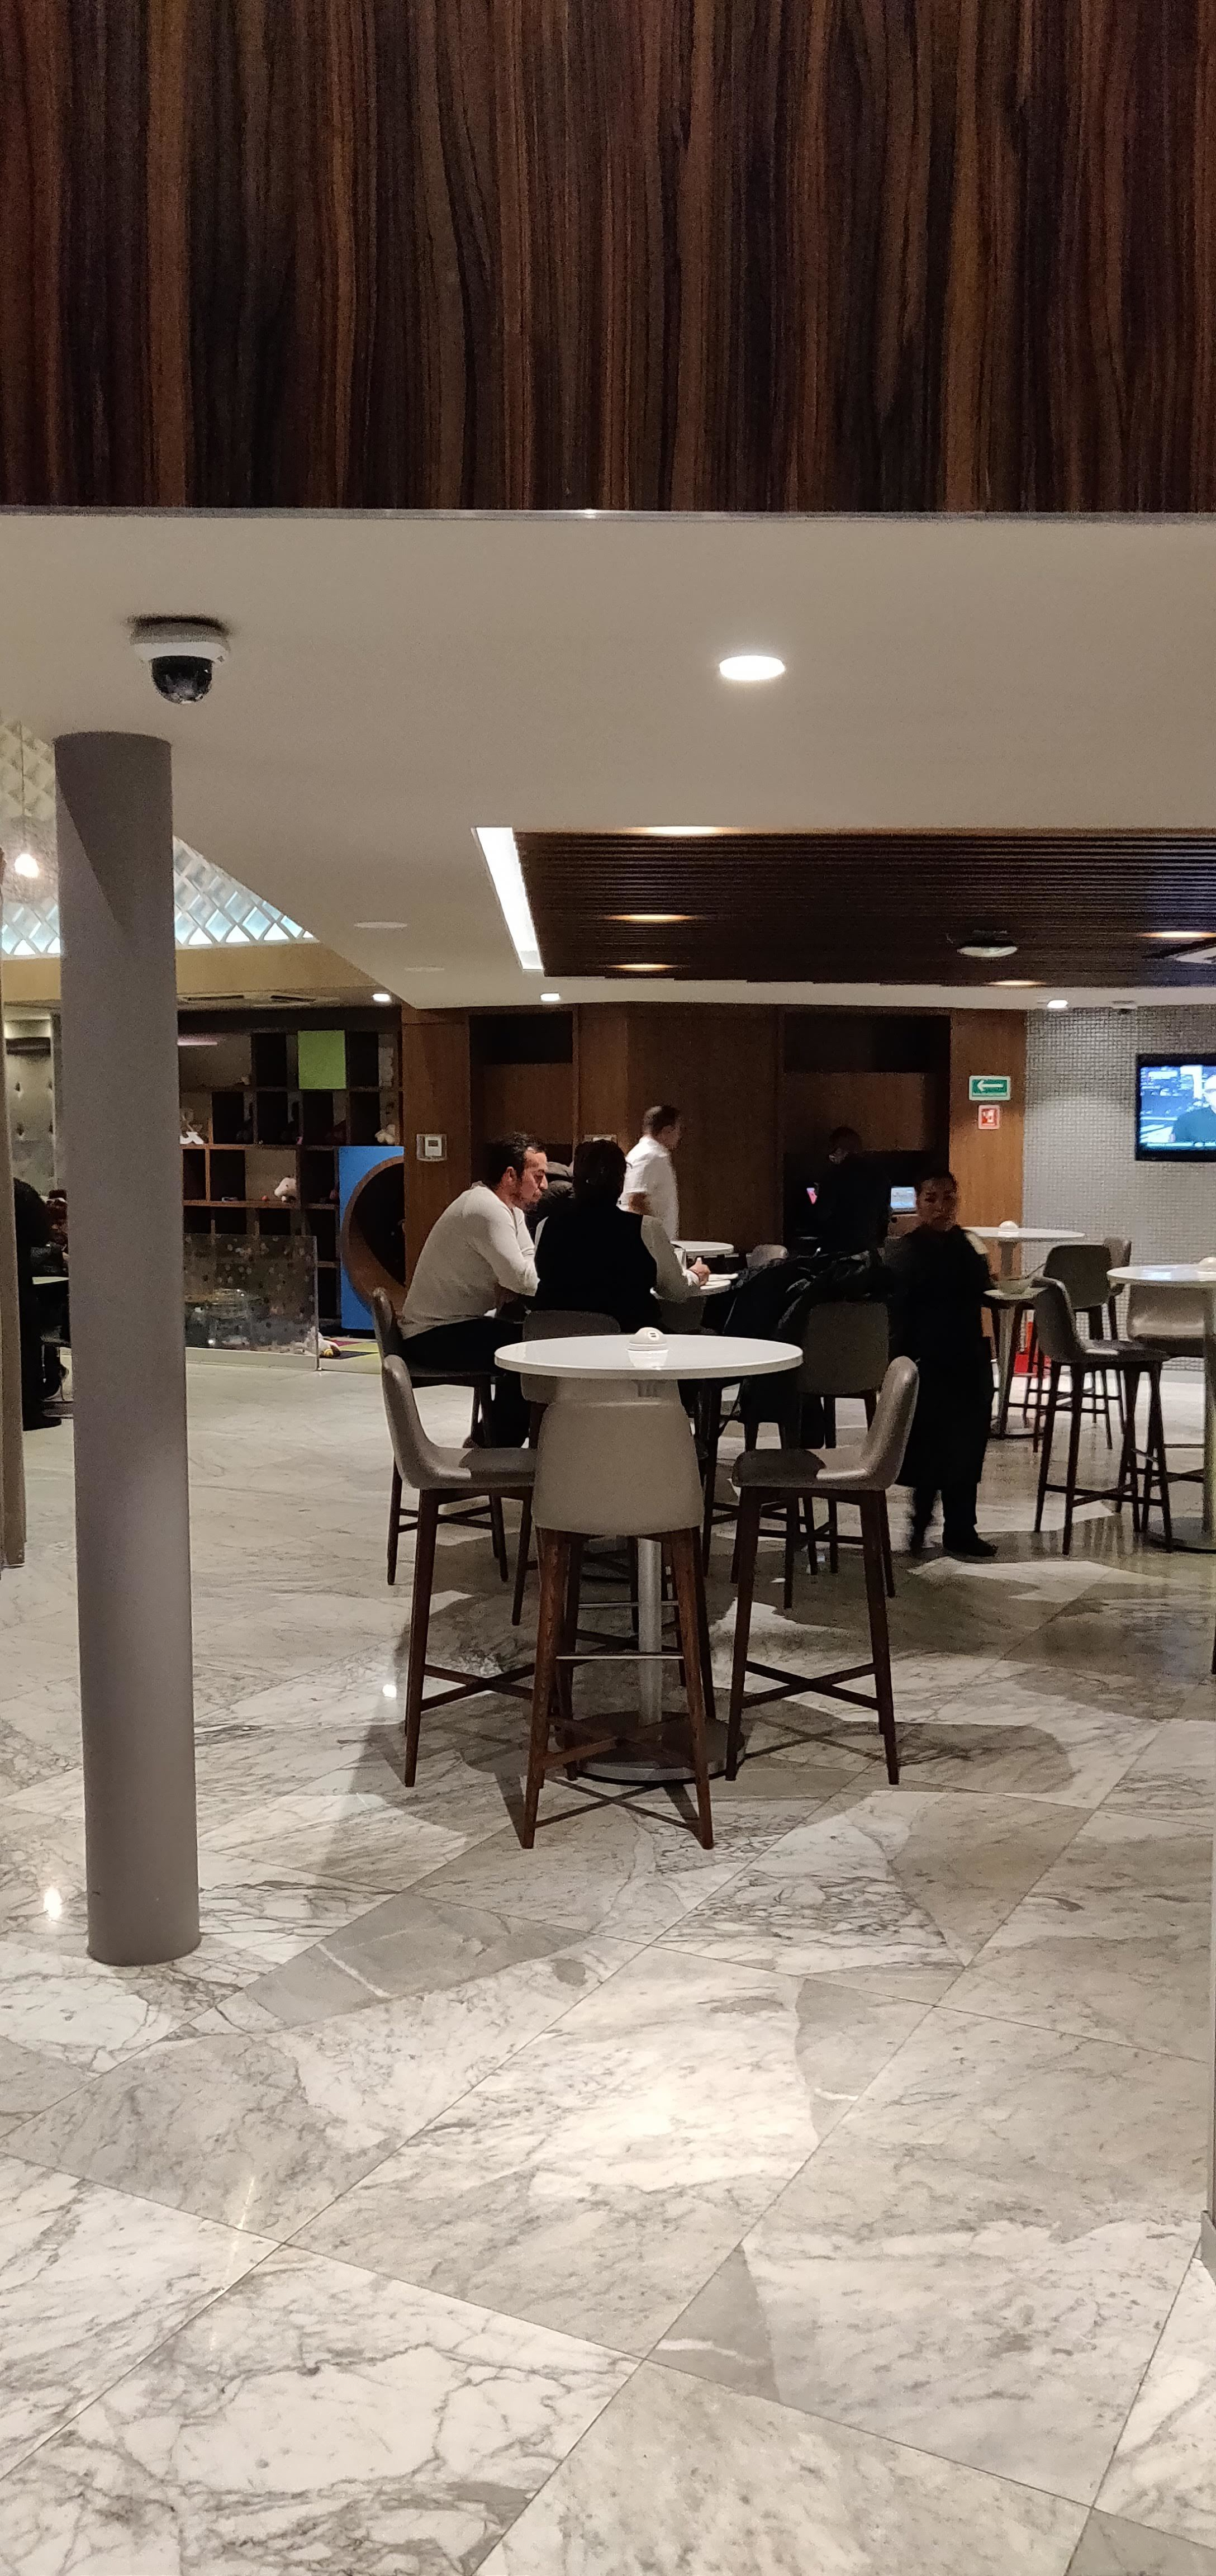 Centurion Lounge Mexico City - Downstairs Dining